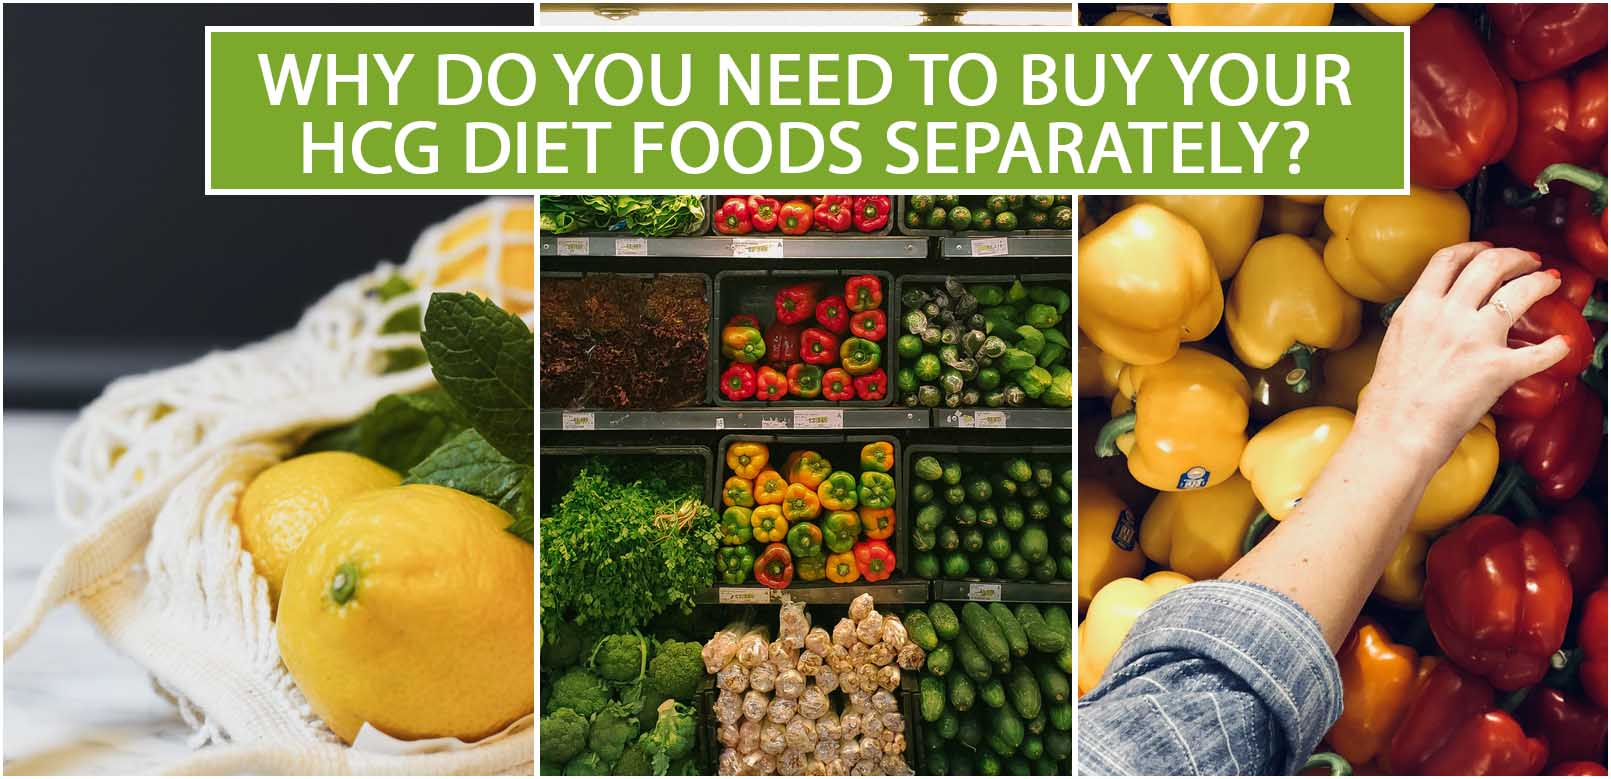 WHY DO YOU NEED TO BUY YOUR HCG DIET FOODS SEPARATELY